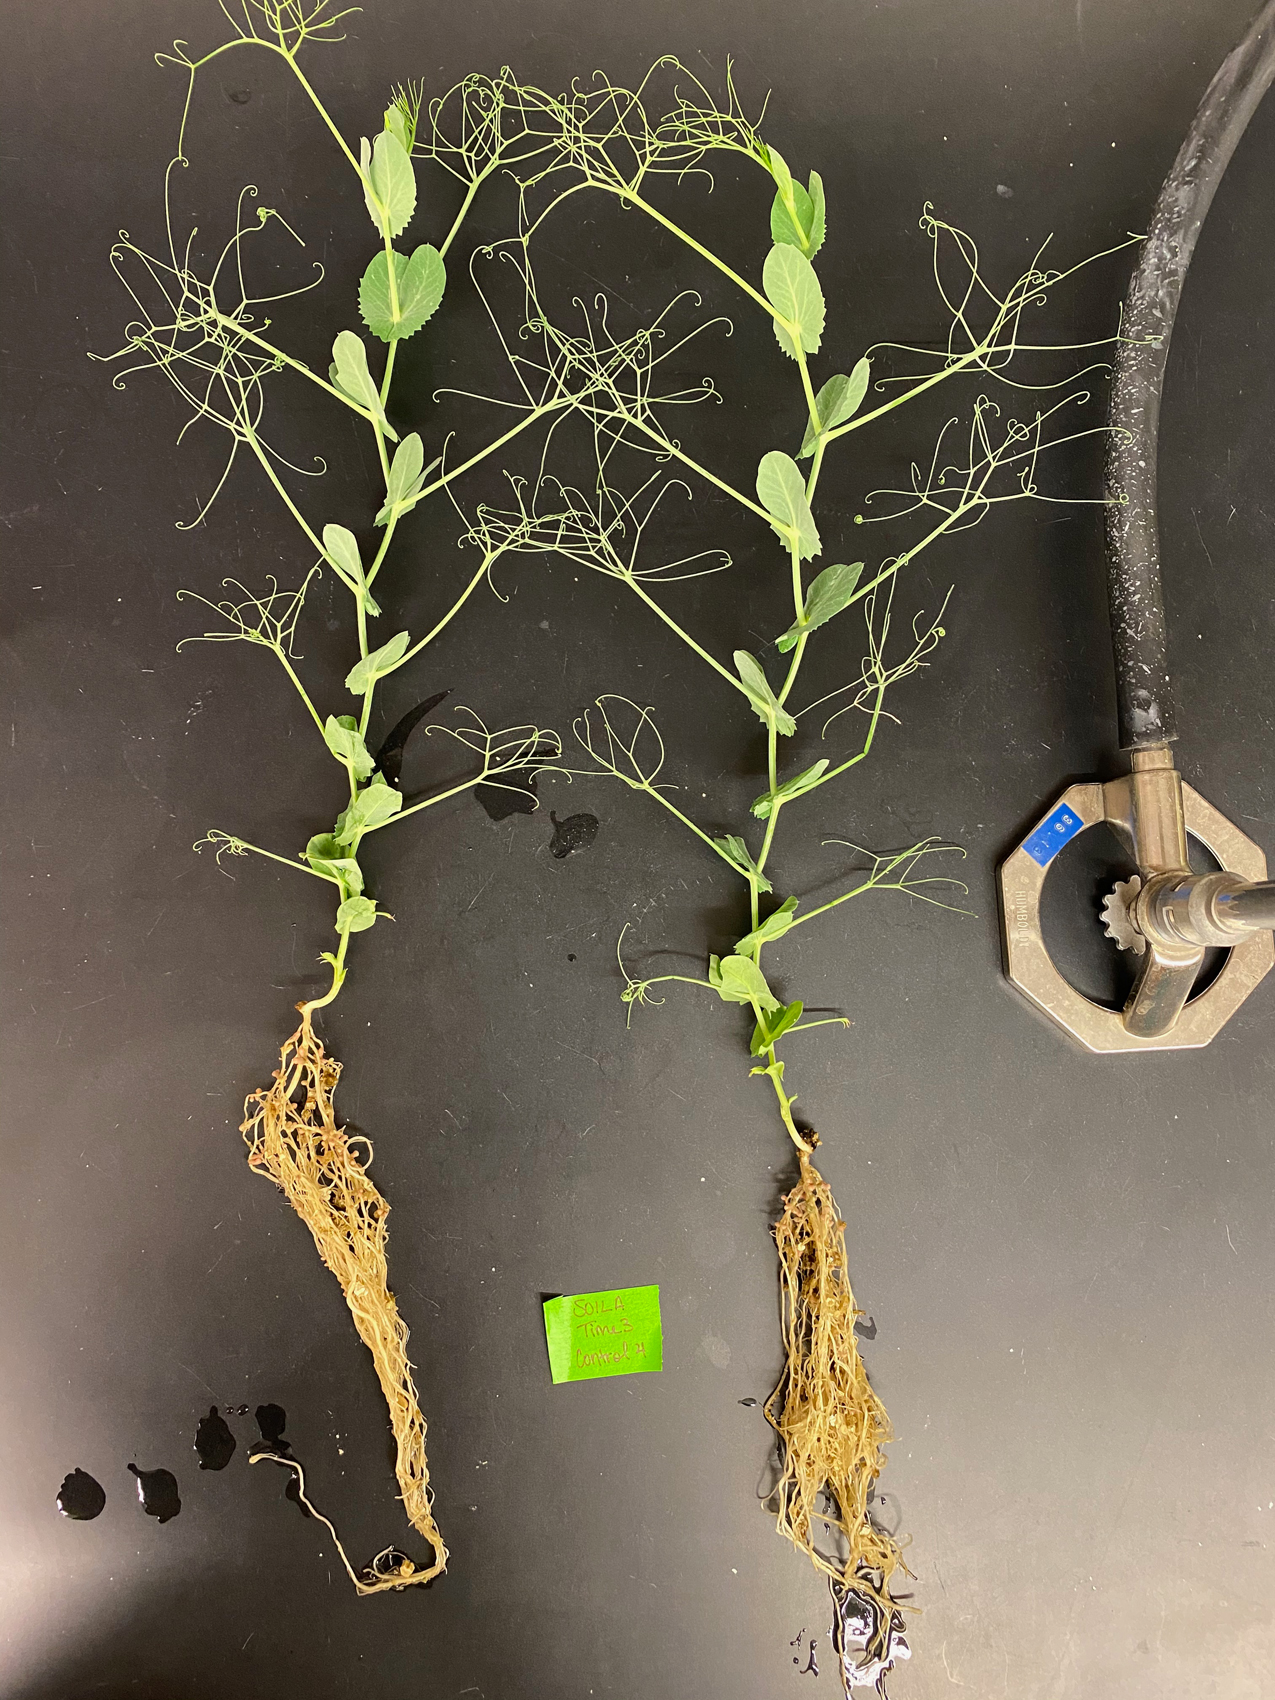 A pea plant with light coloured roots.